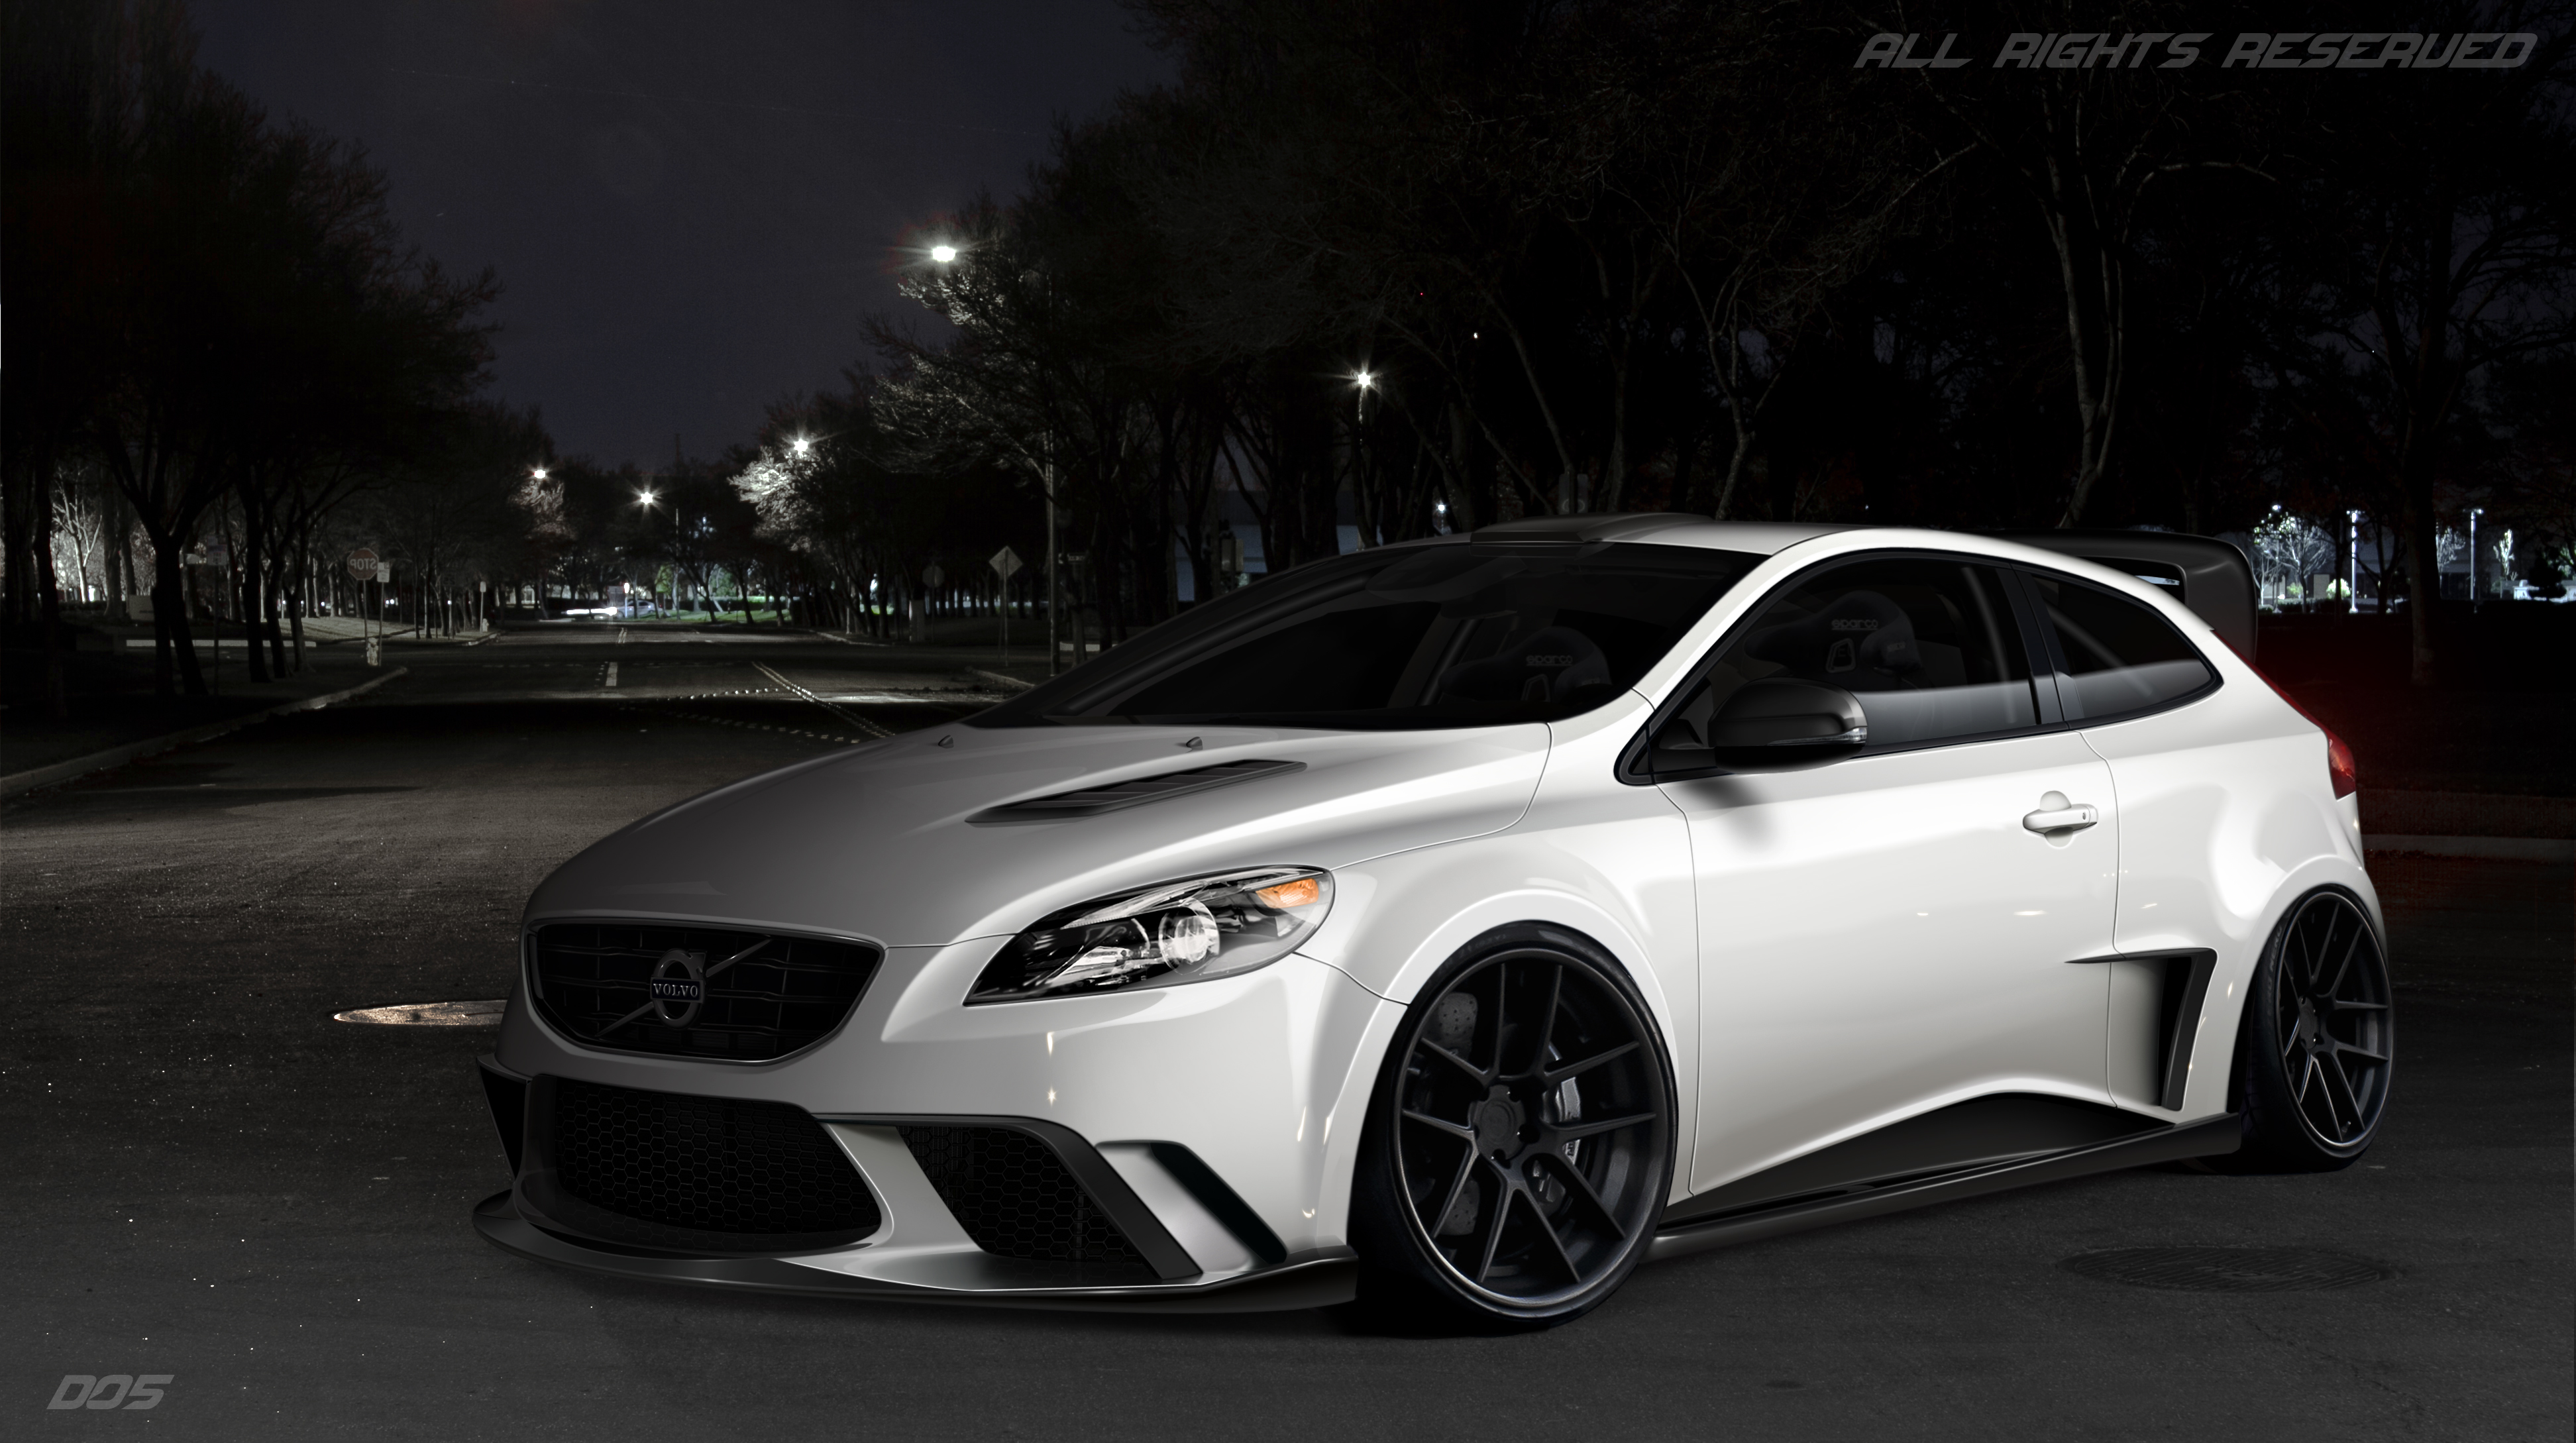 Volvo V40 by thedesign05